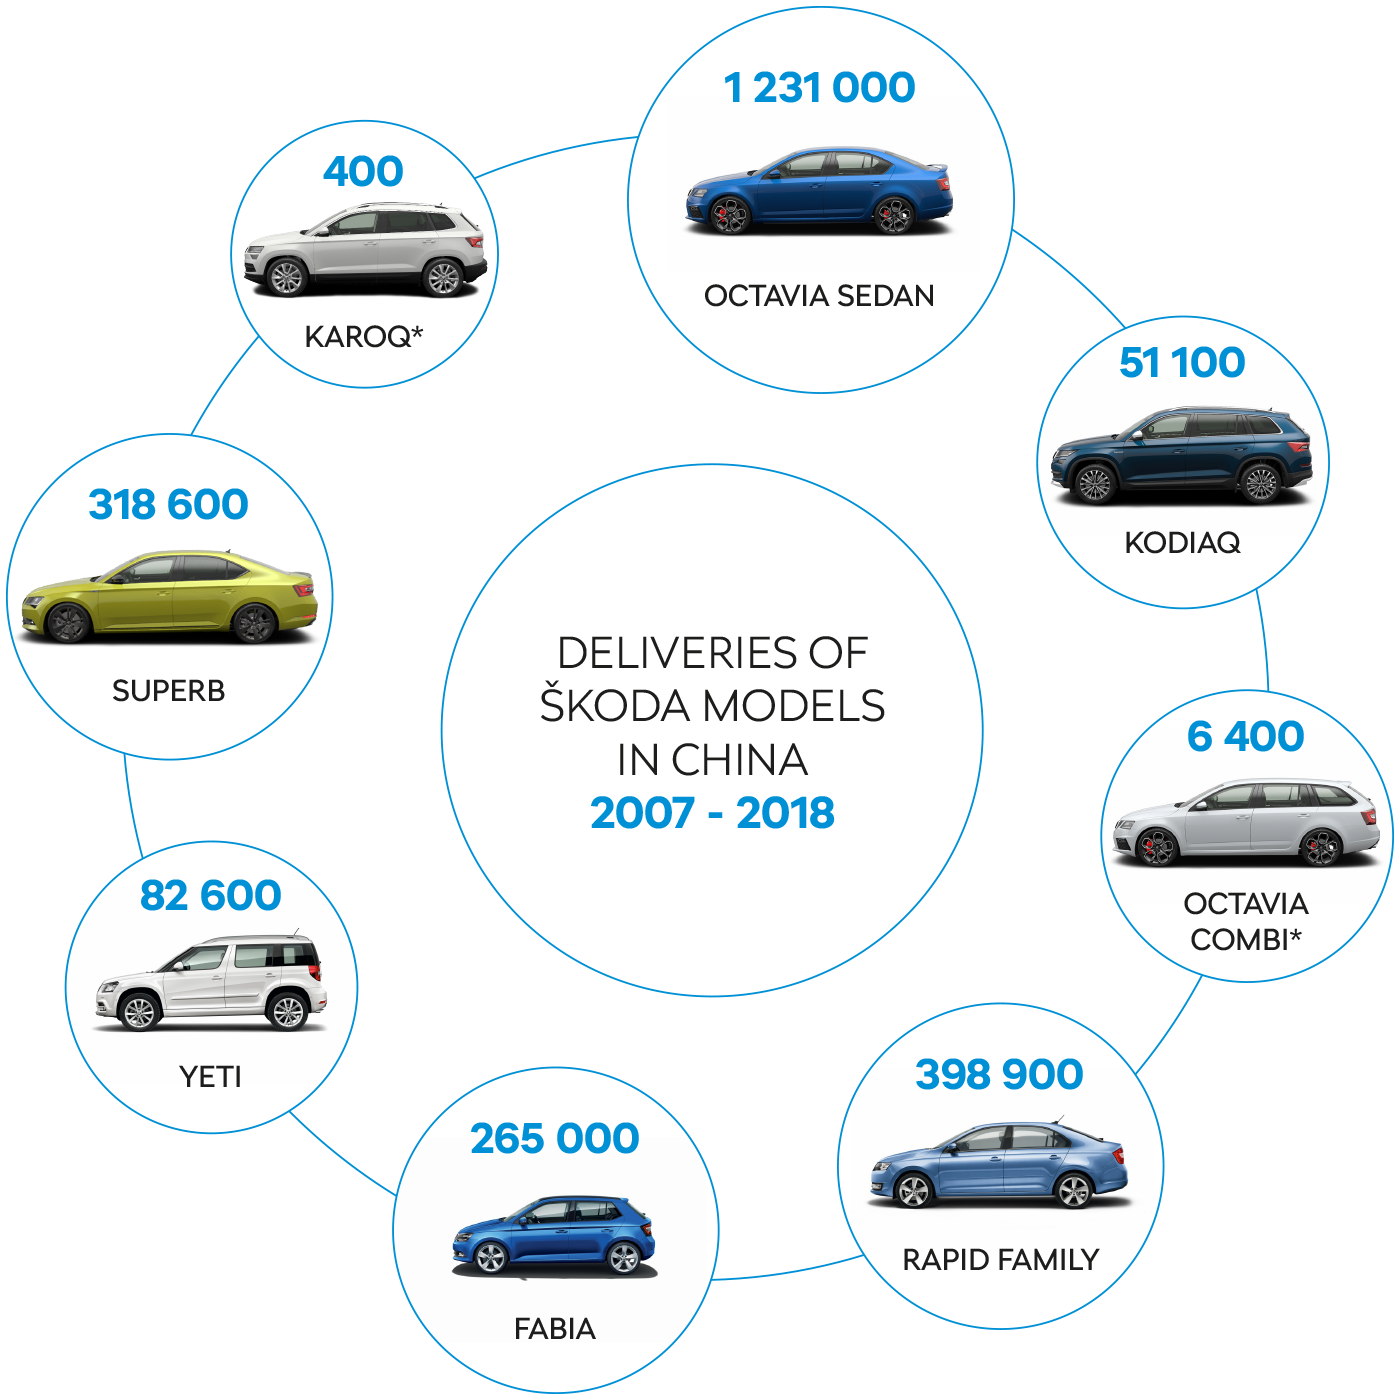 Deliveries of ŠKODA models in China